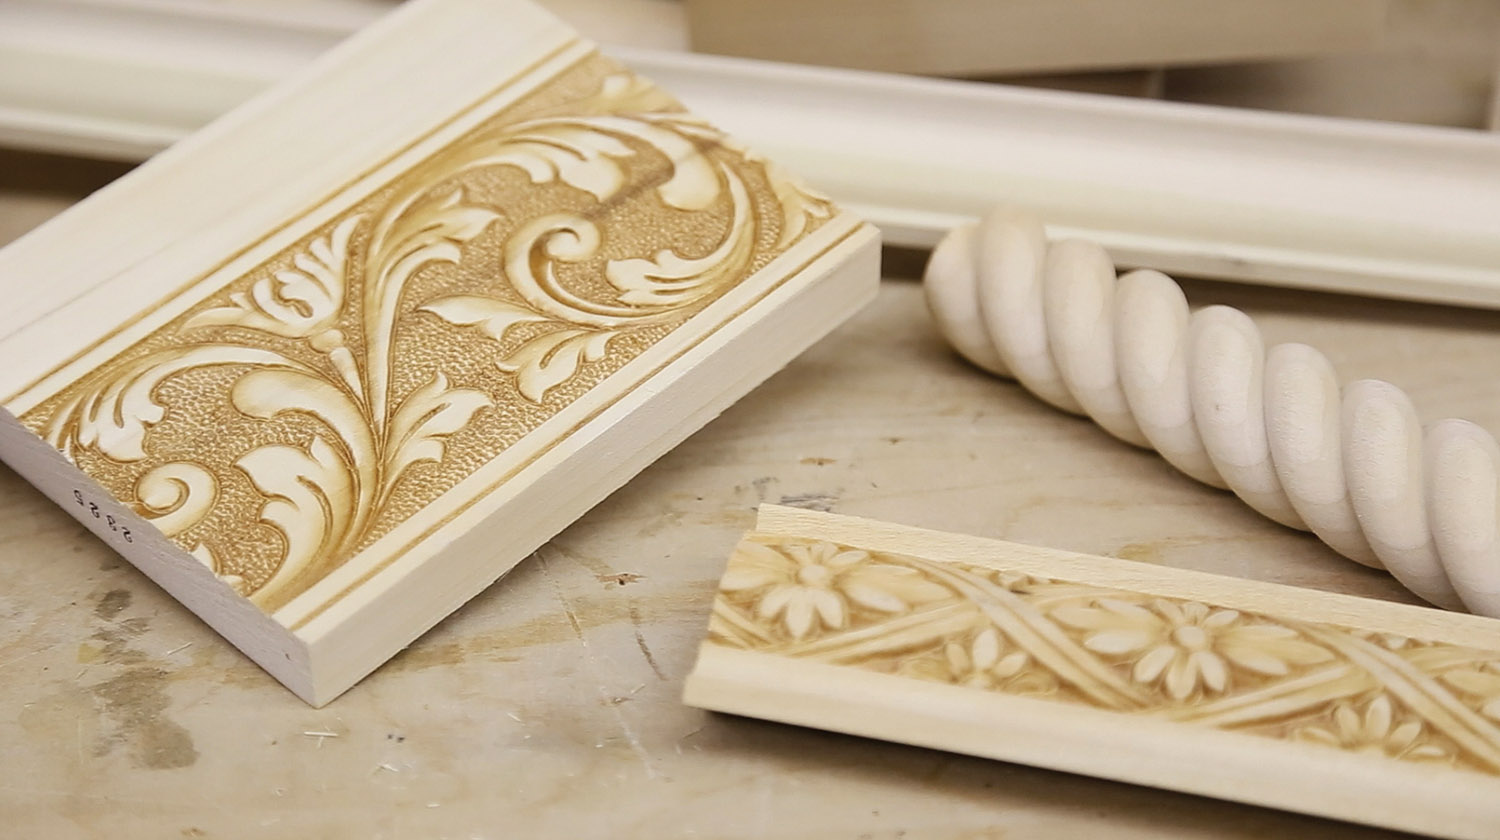 Examples of embossed mouldings, made using pressure and heat.